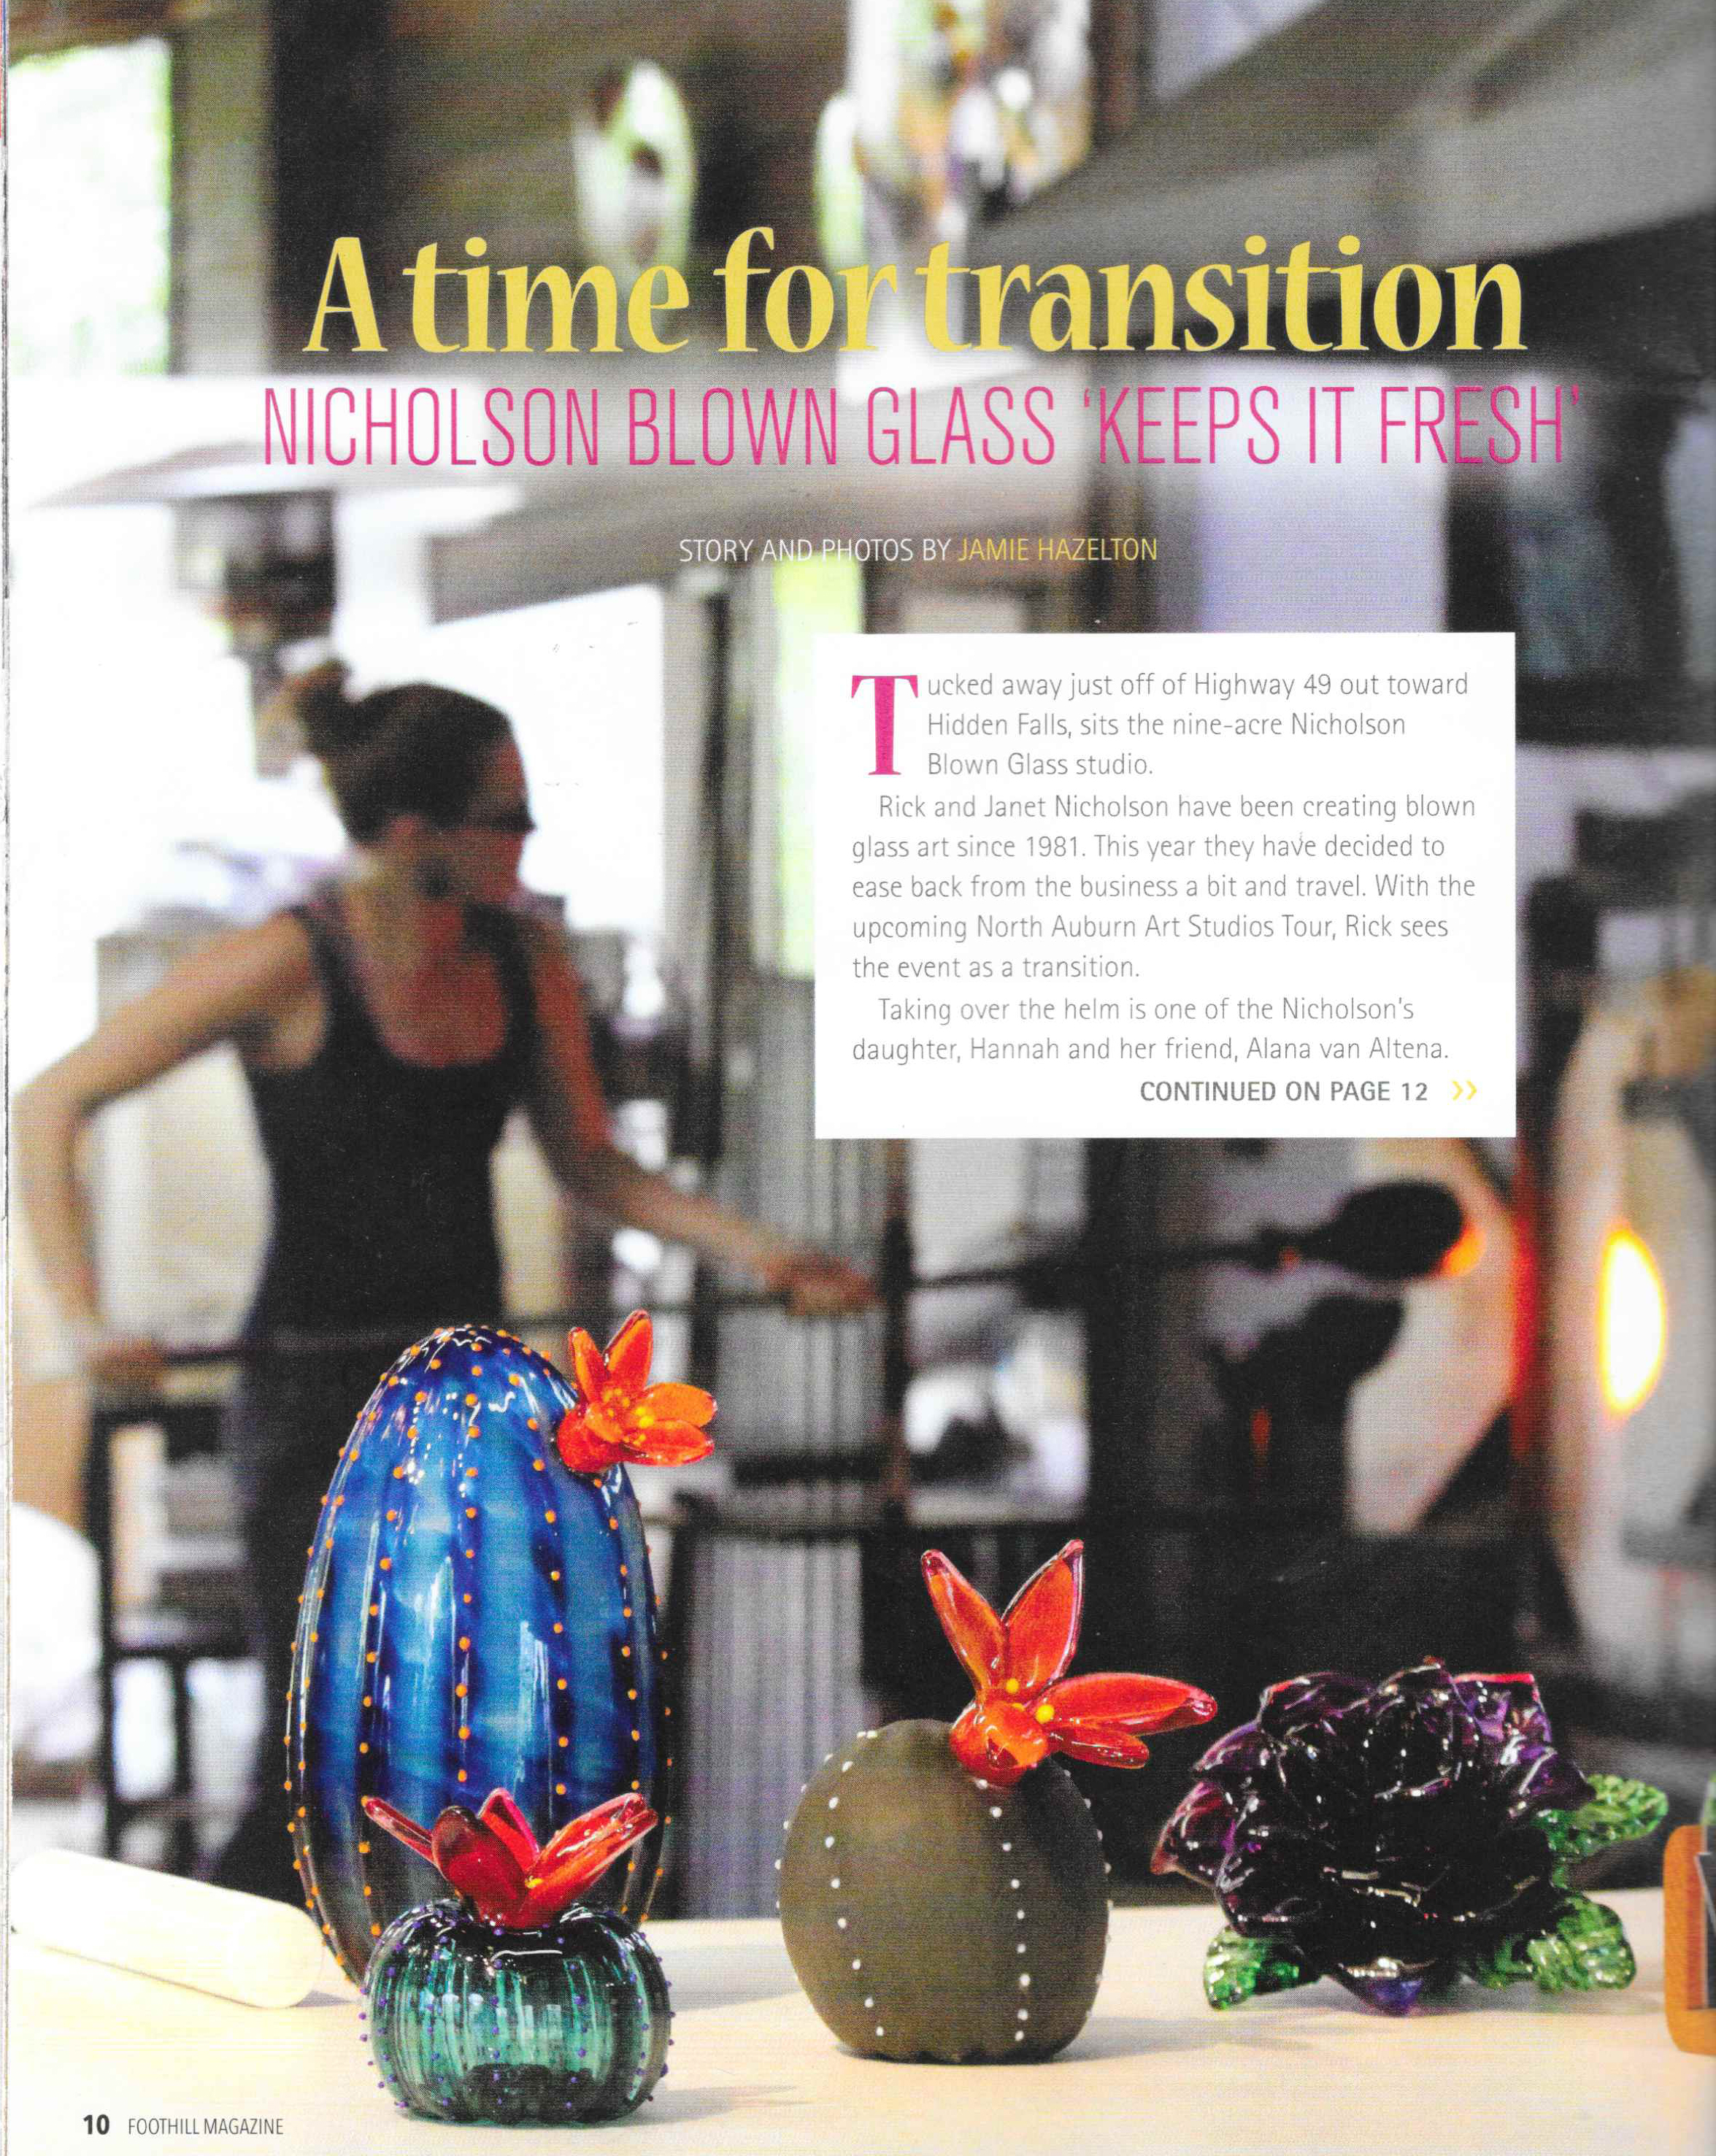 Foothills Magazine - May 2018 Issue, pages 10 and 12.Article highlighting the transition of the glass studio from Nicholson Blown Glass to Nicholson van Altena Glass.